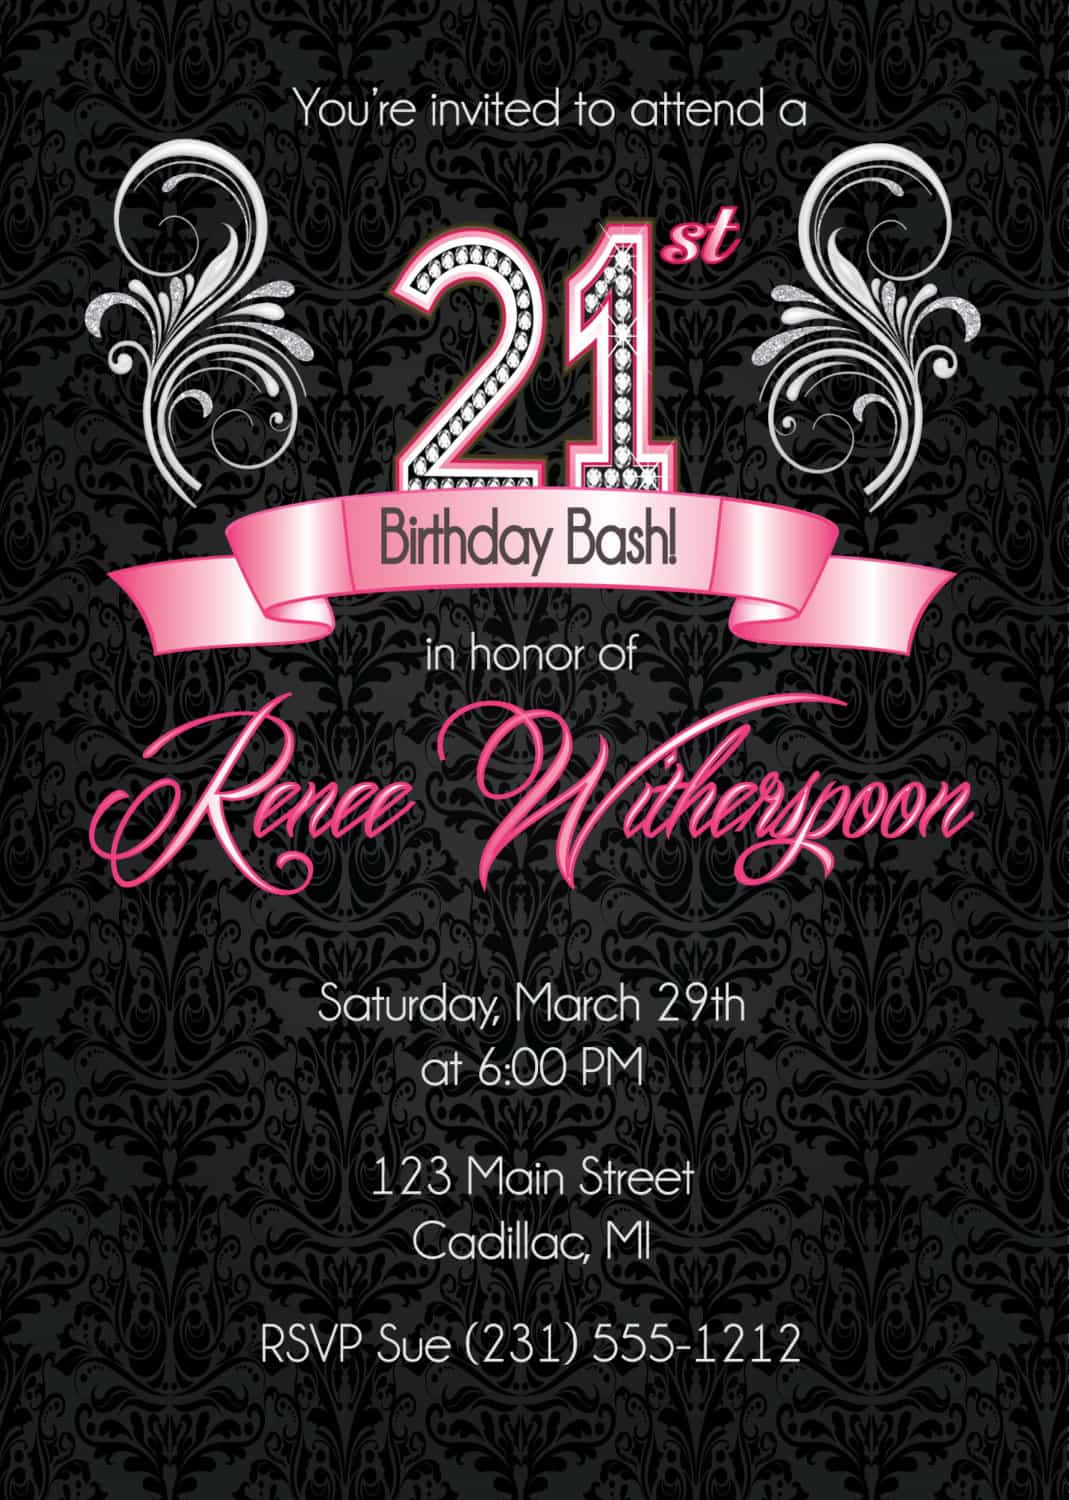 free 21st birthday invitation cards design ; the-ethics-of-21st-birthday-invitations-designs-looking-design-of-21st-birthday-invitation-21st-birthday-party-fabpartyprints-egreeting-ecards-com